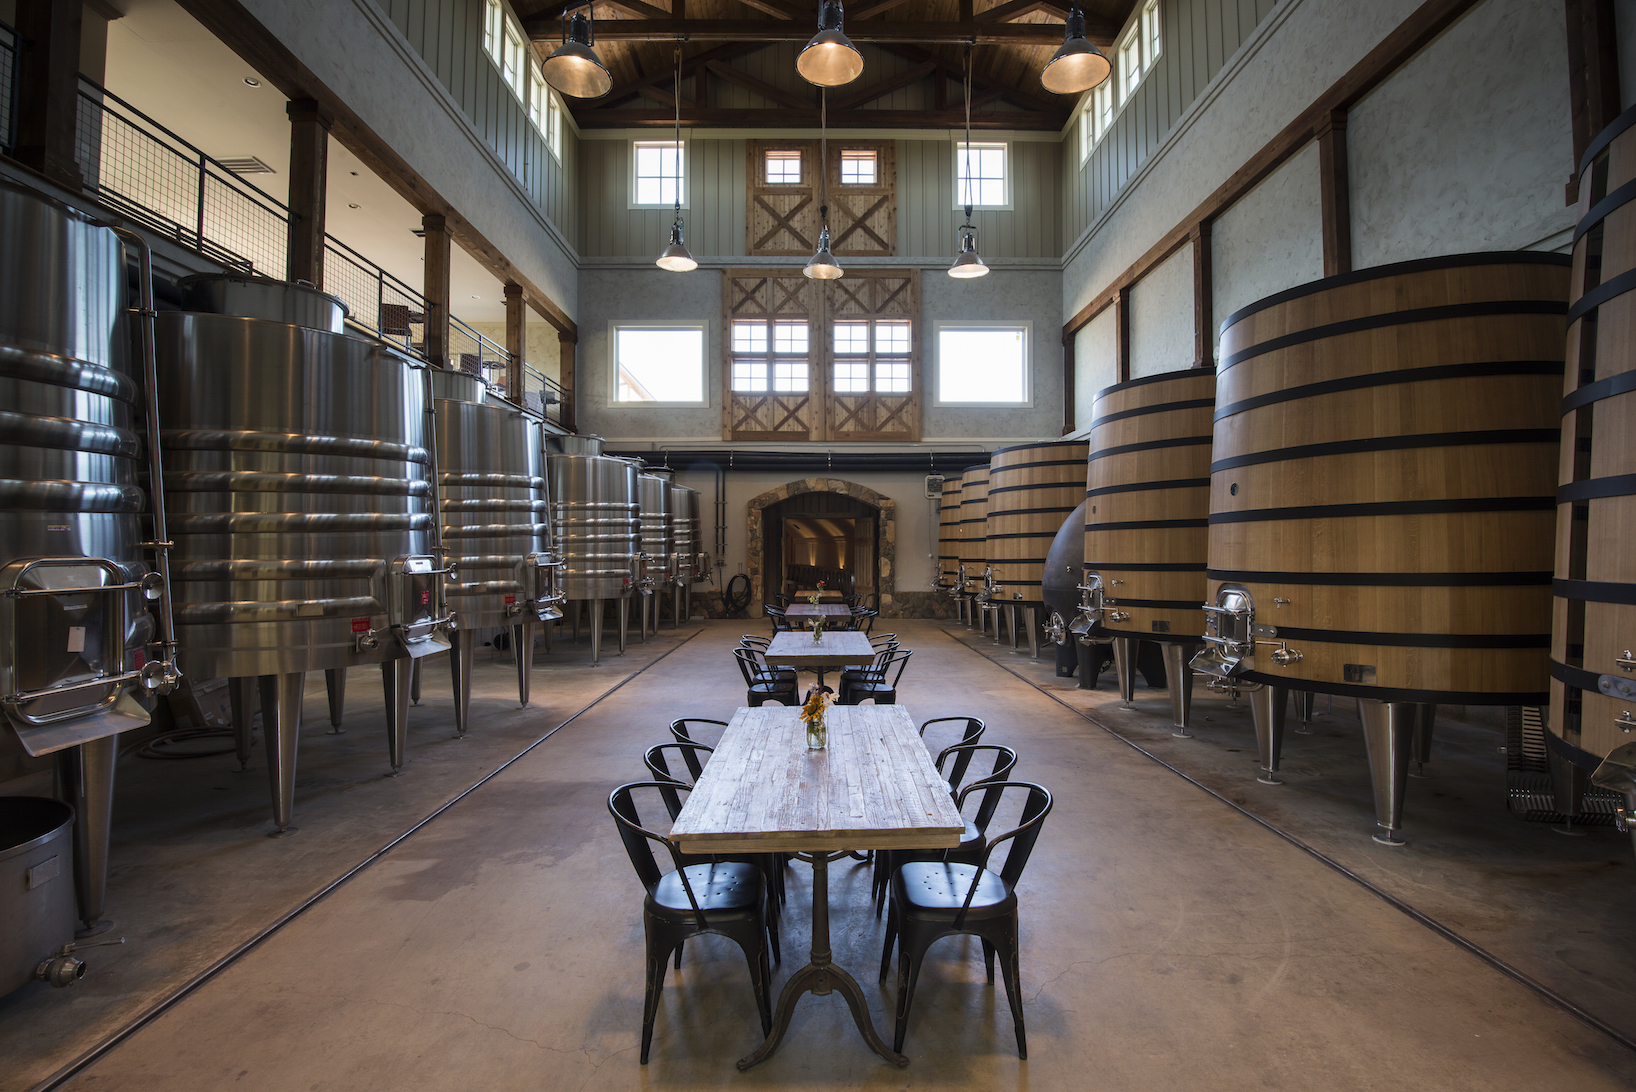 Specialty Tours & Tastings - Explore the Options